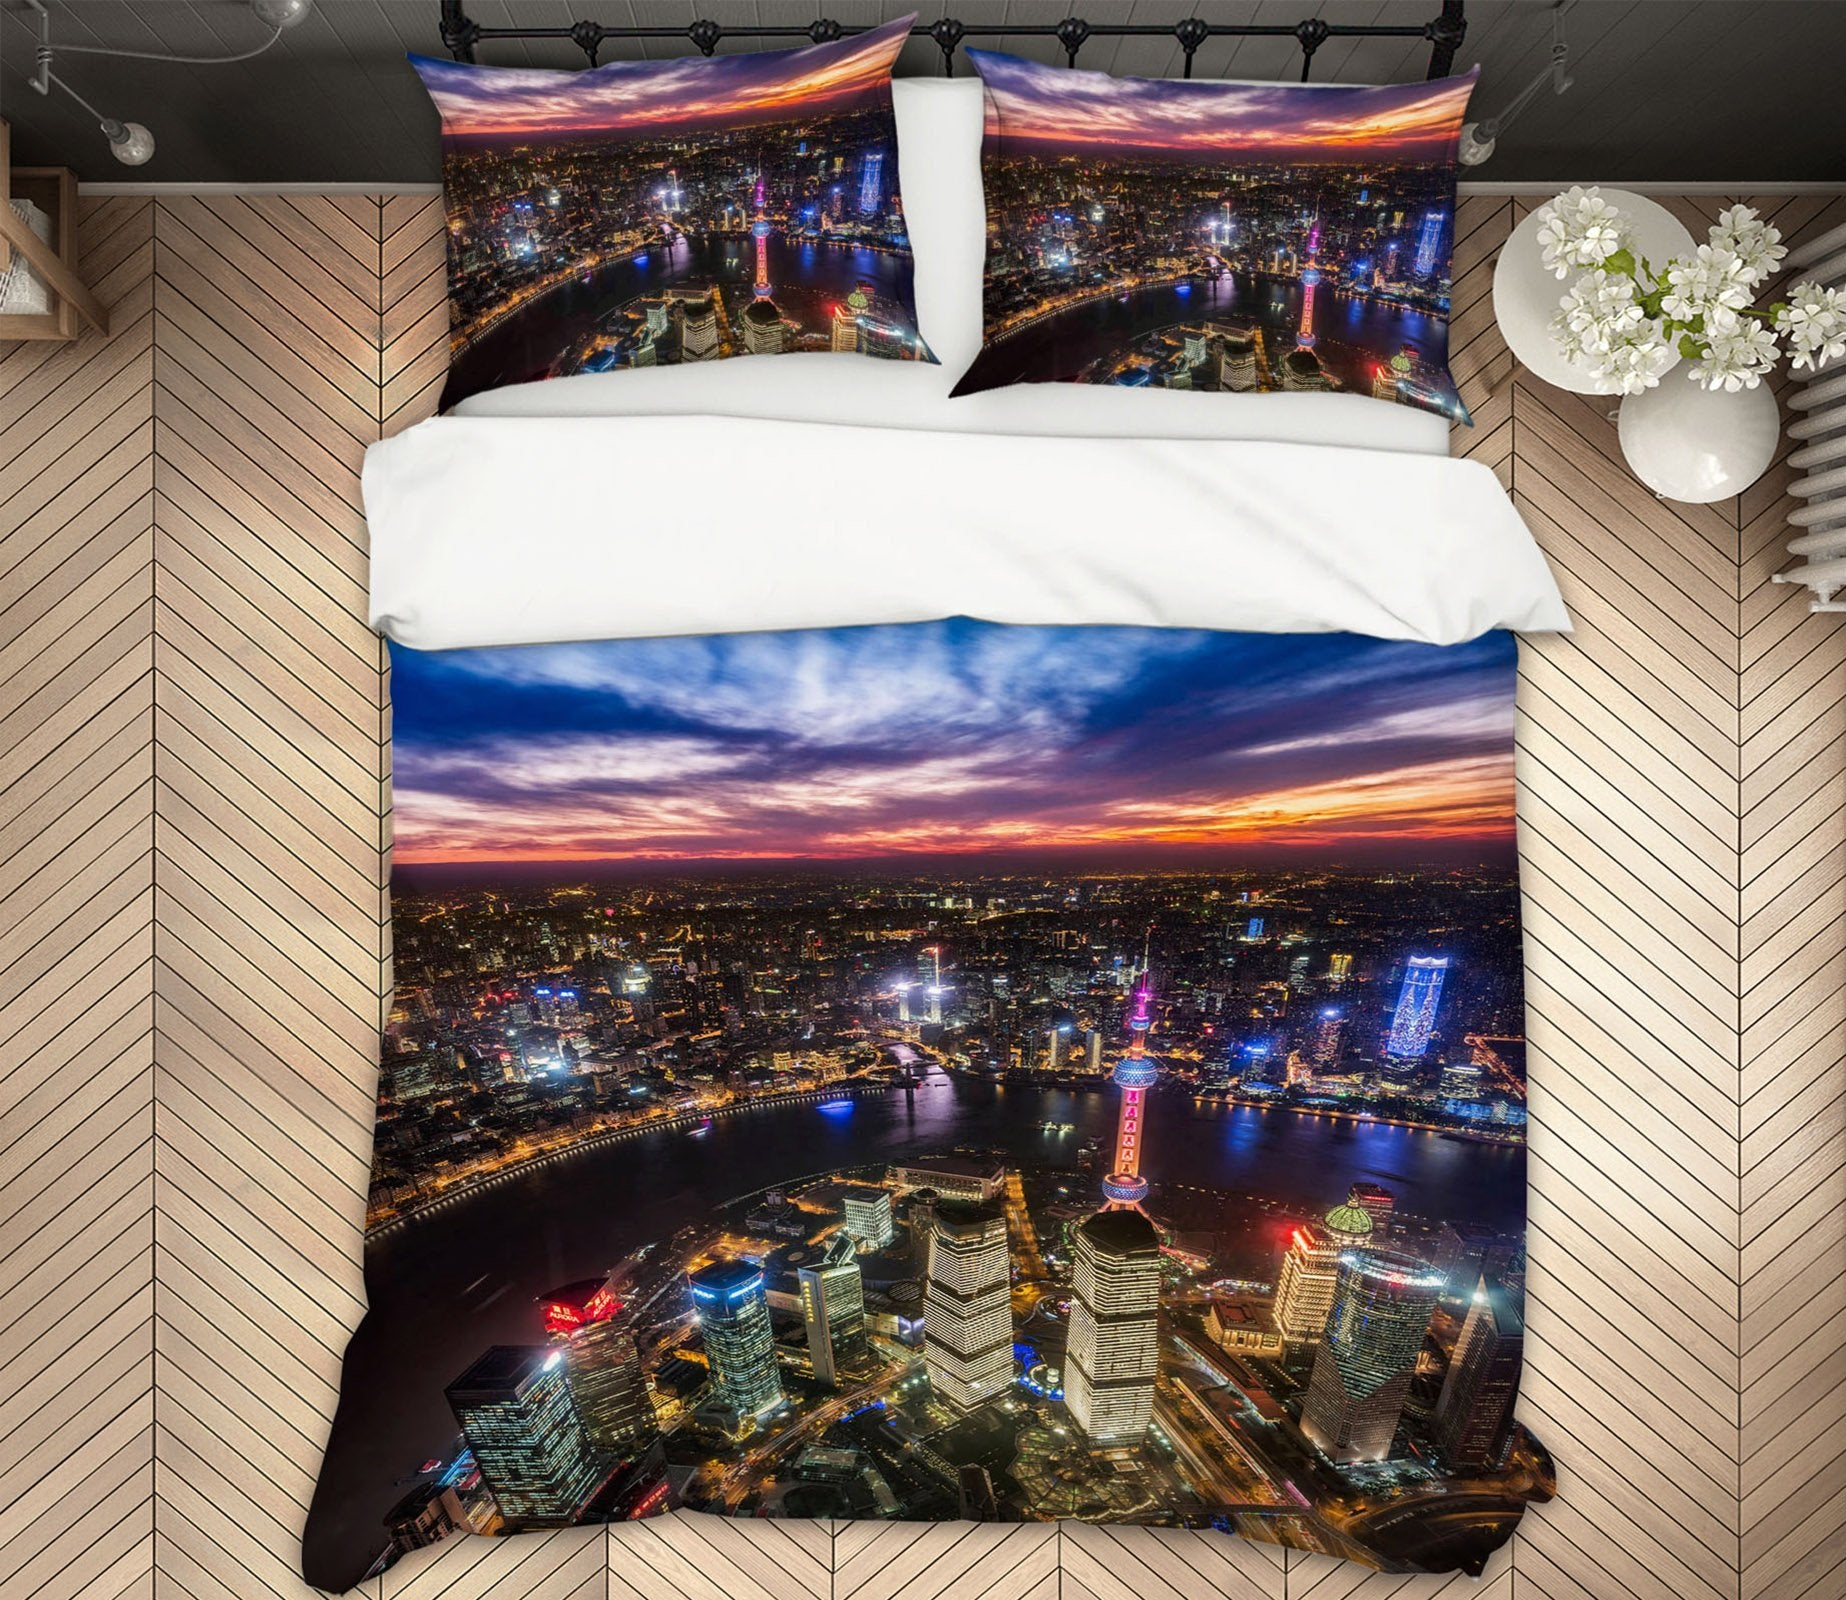 3D Aerial Night Scene 2146 Marco Carmassi Bedding Bed Pillowcases Quilt Quiet Covers AJ Creativity Home